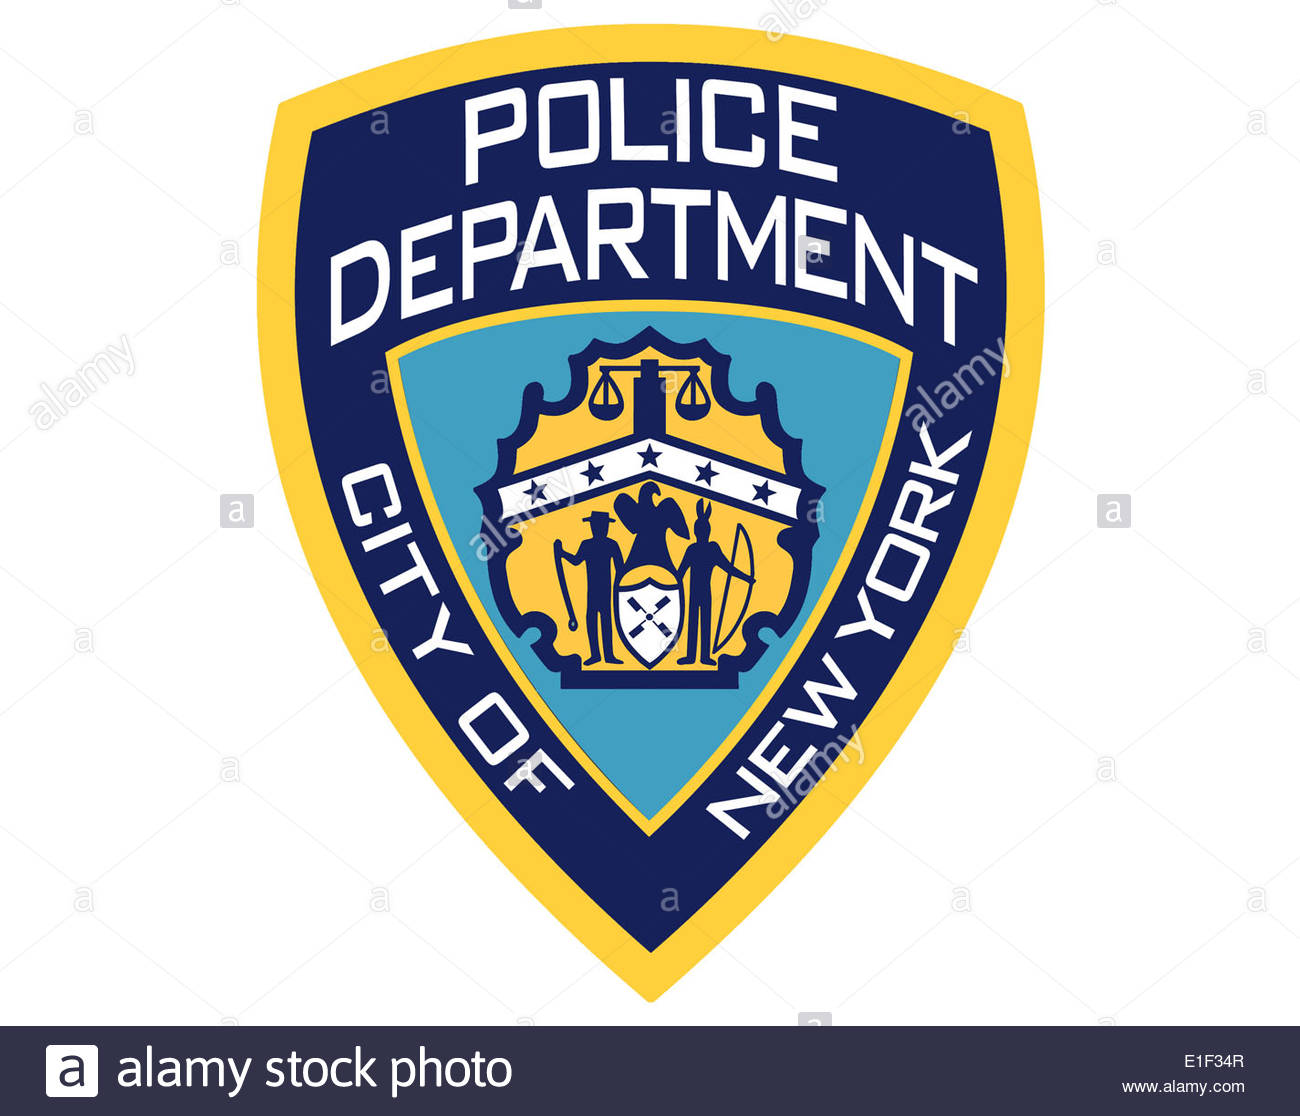 nypd new york police department icon logo isolated app